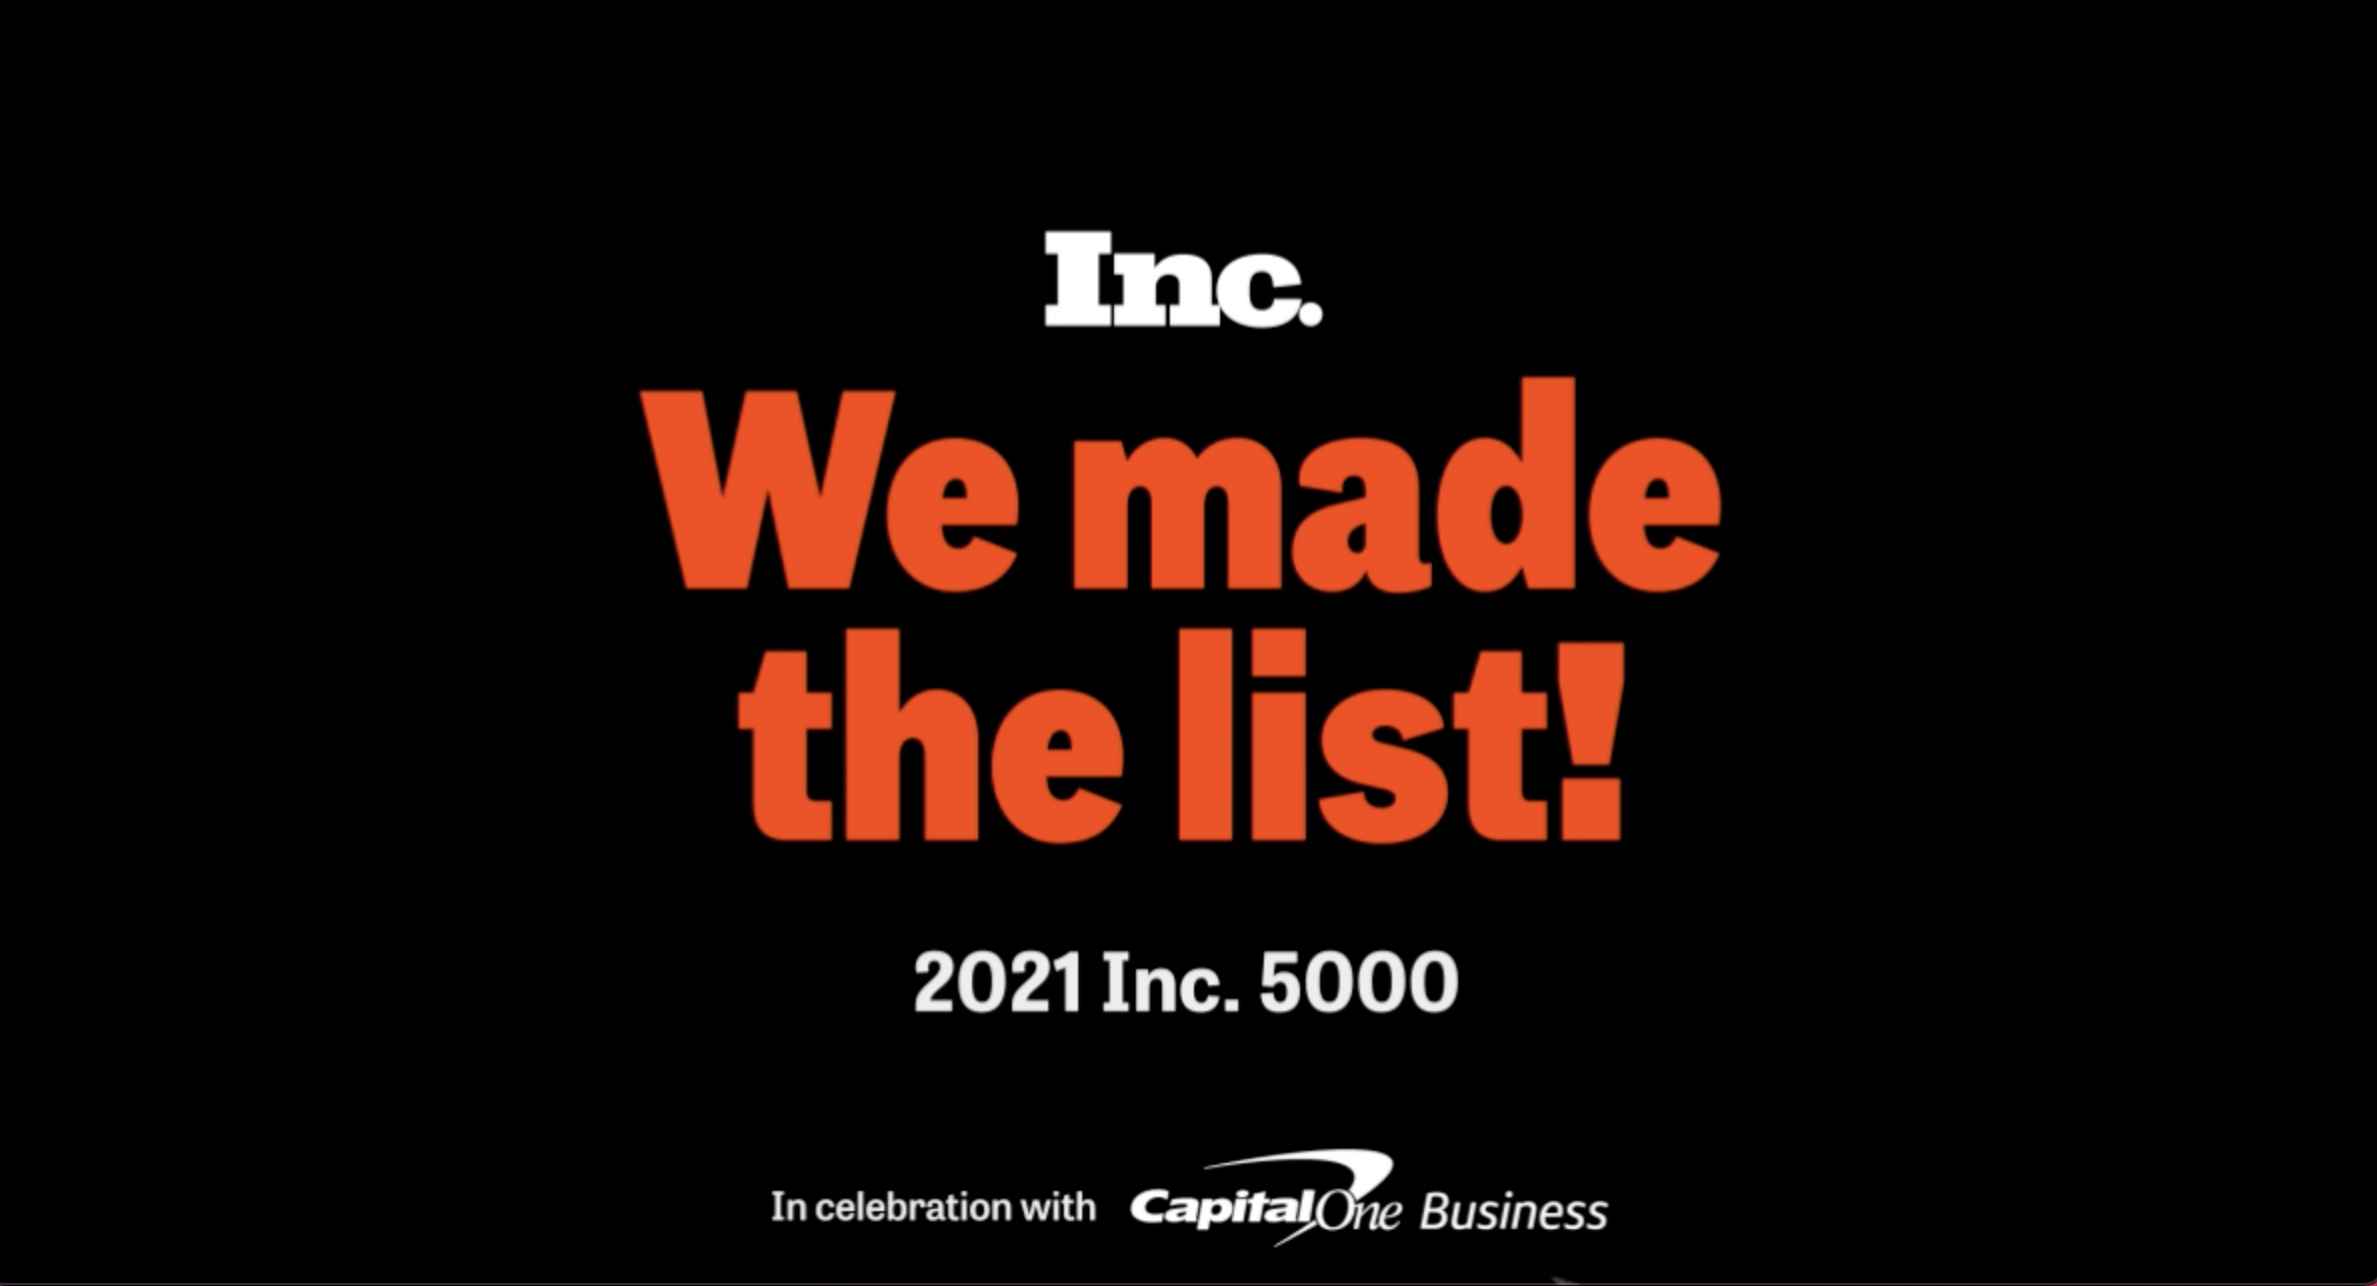 Calyx earns spot on the Inc. 5000, ranking No. 1,580 with a 3 year revenue growth of 298%